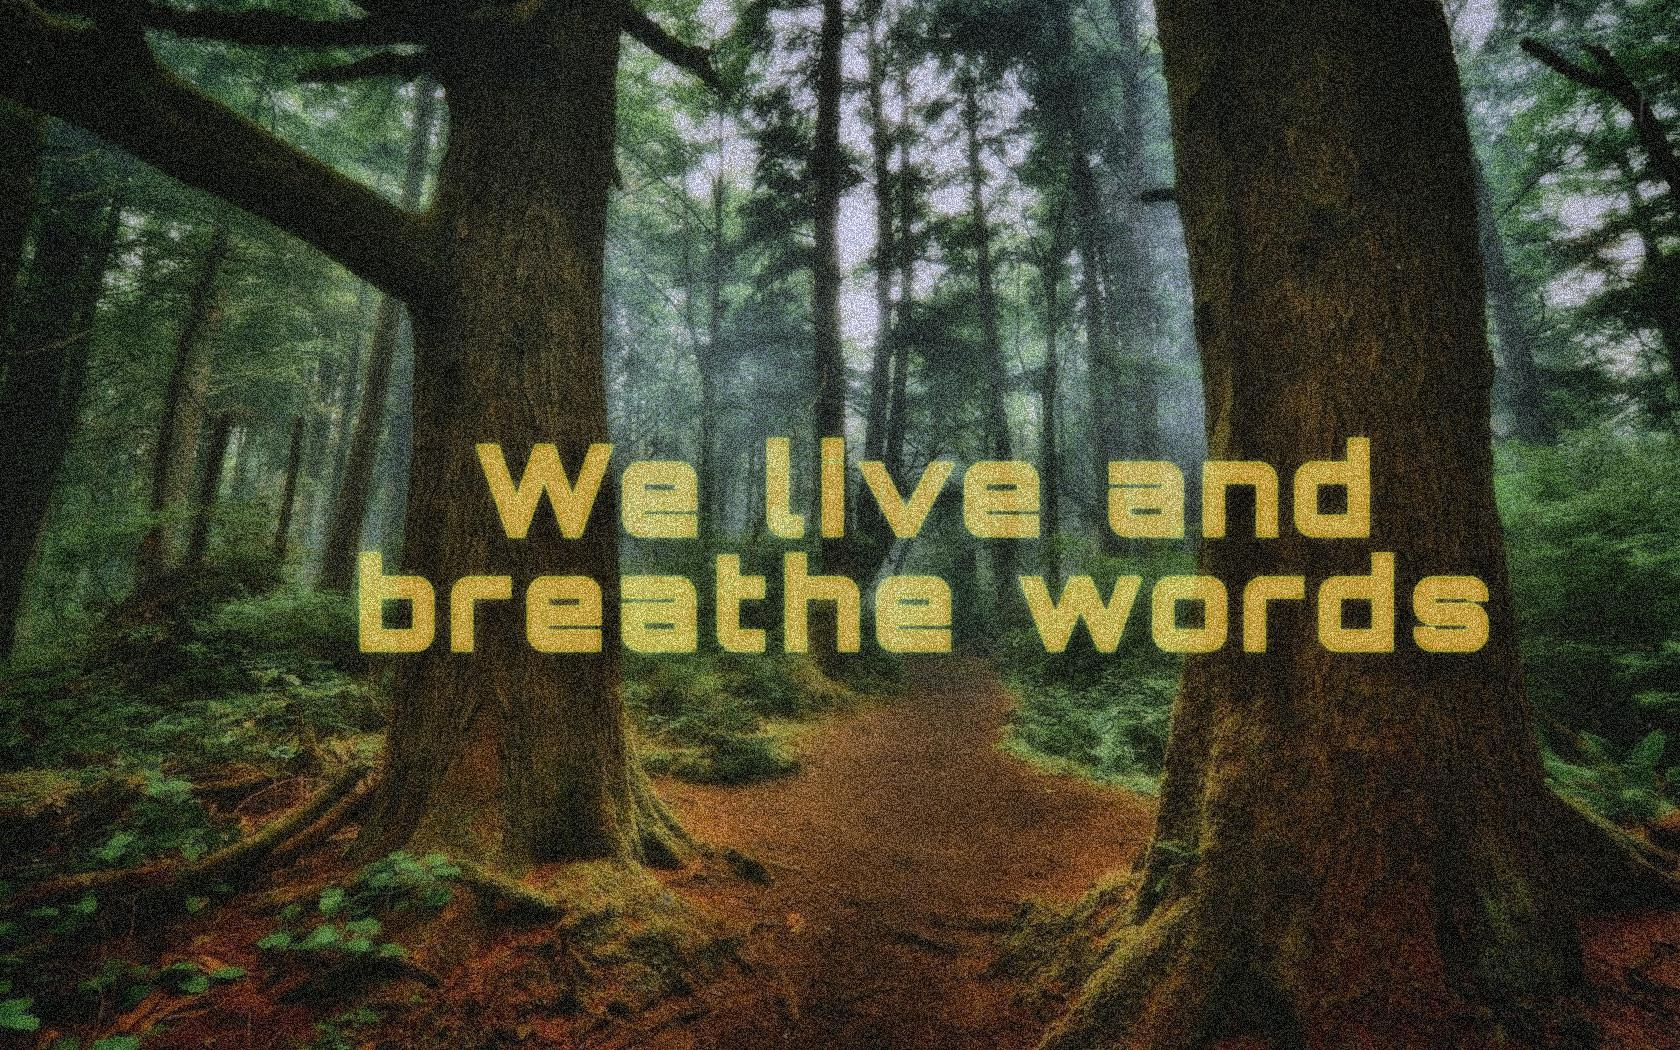 We Iive and breathe words. (Cassandra Clare) (1680×1050)